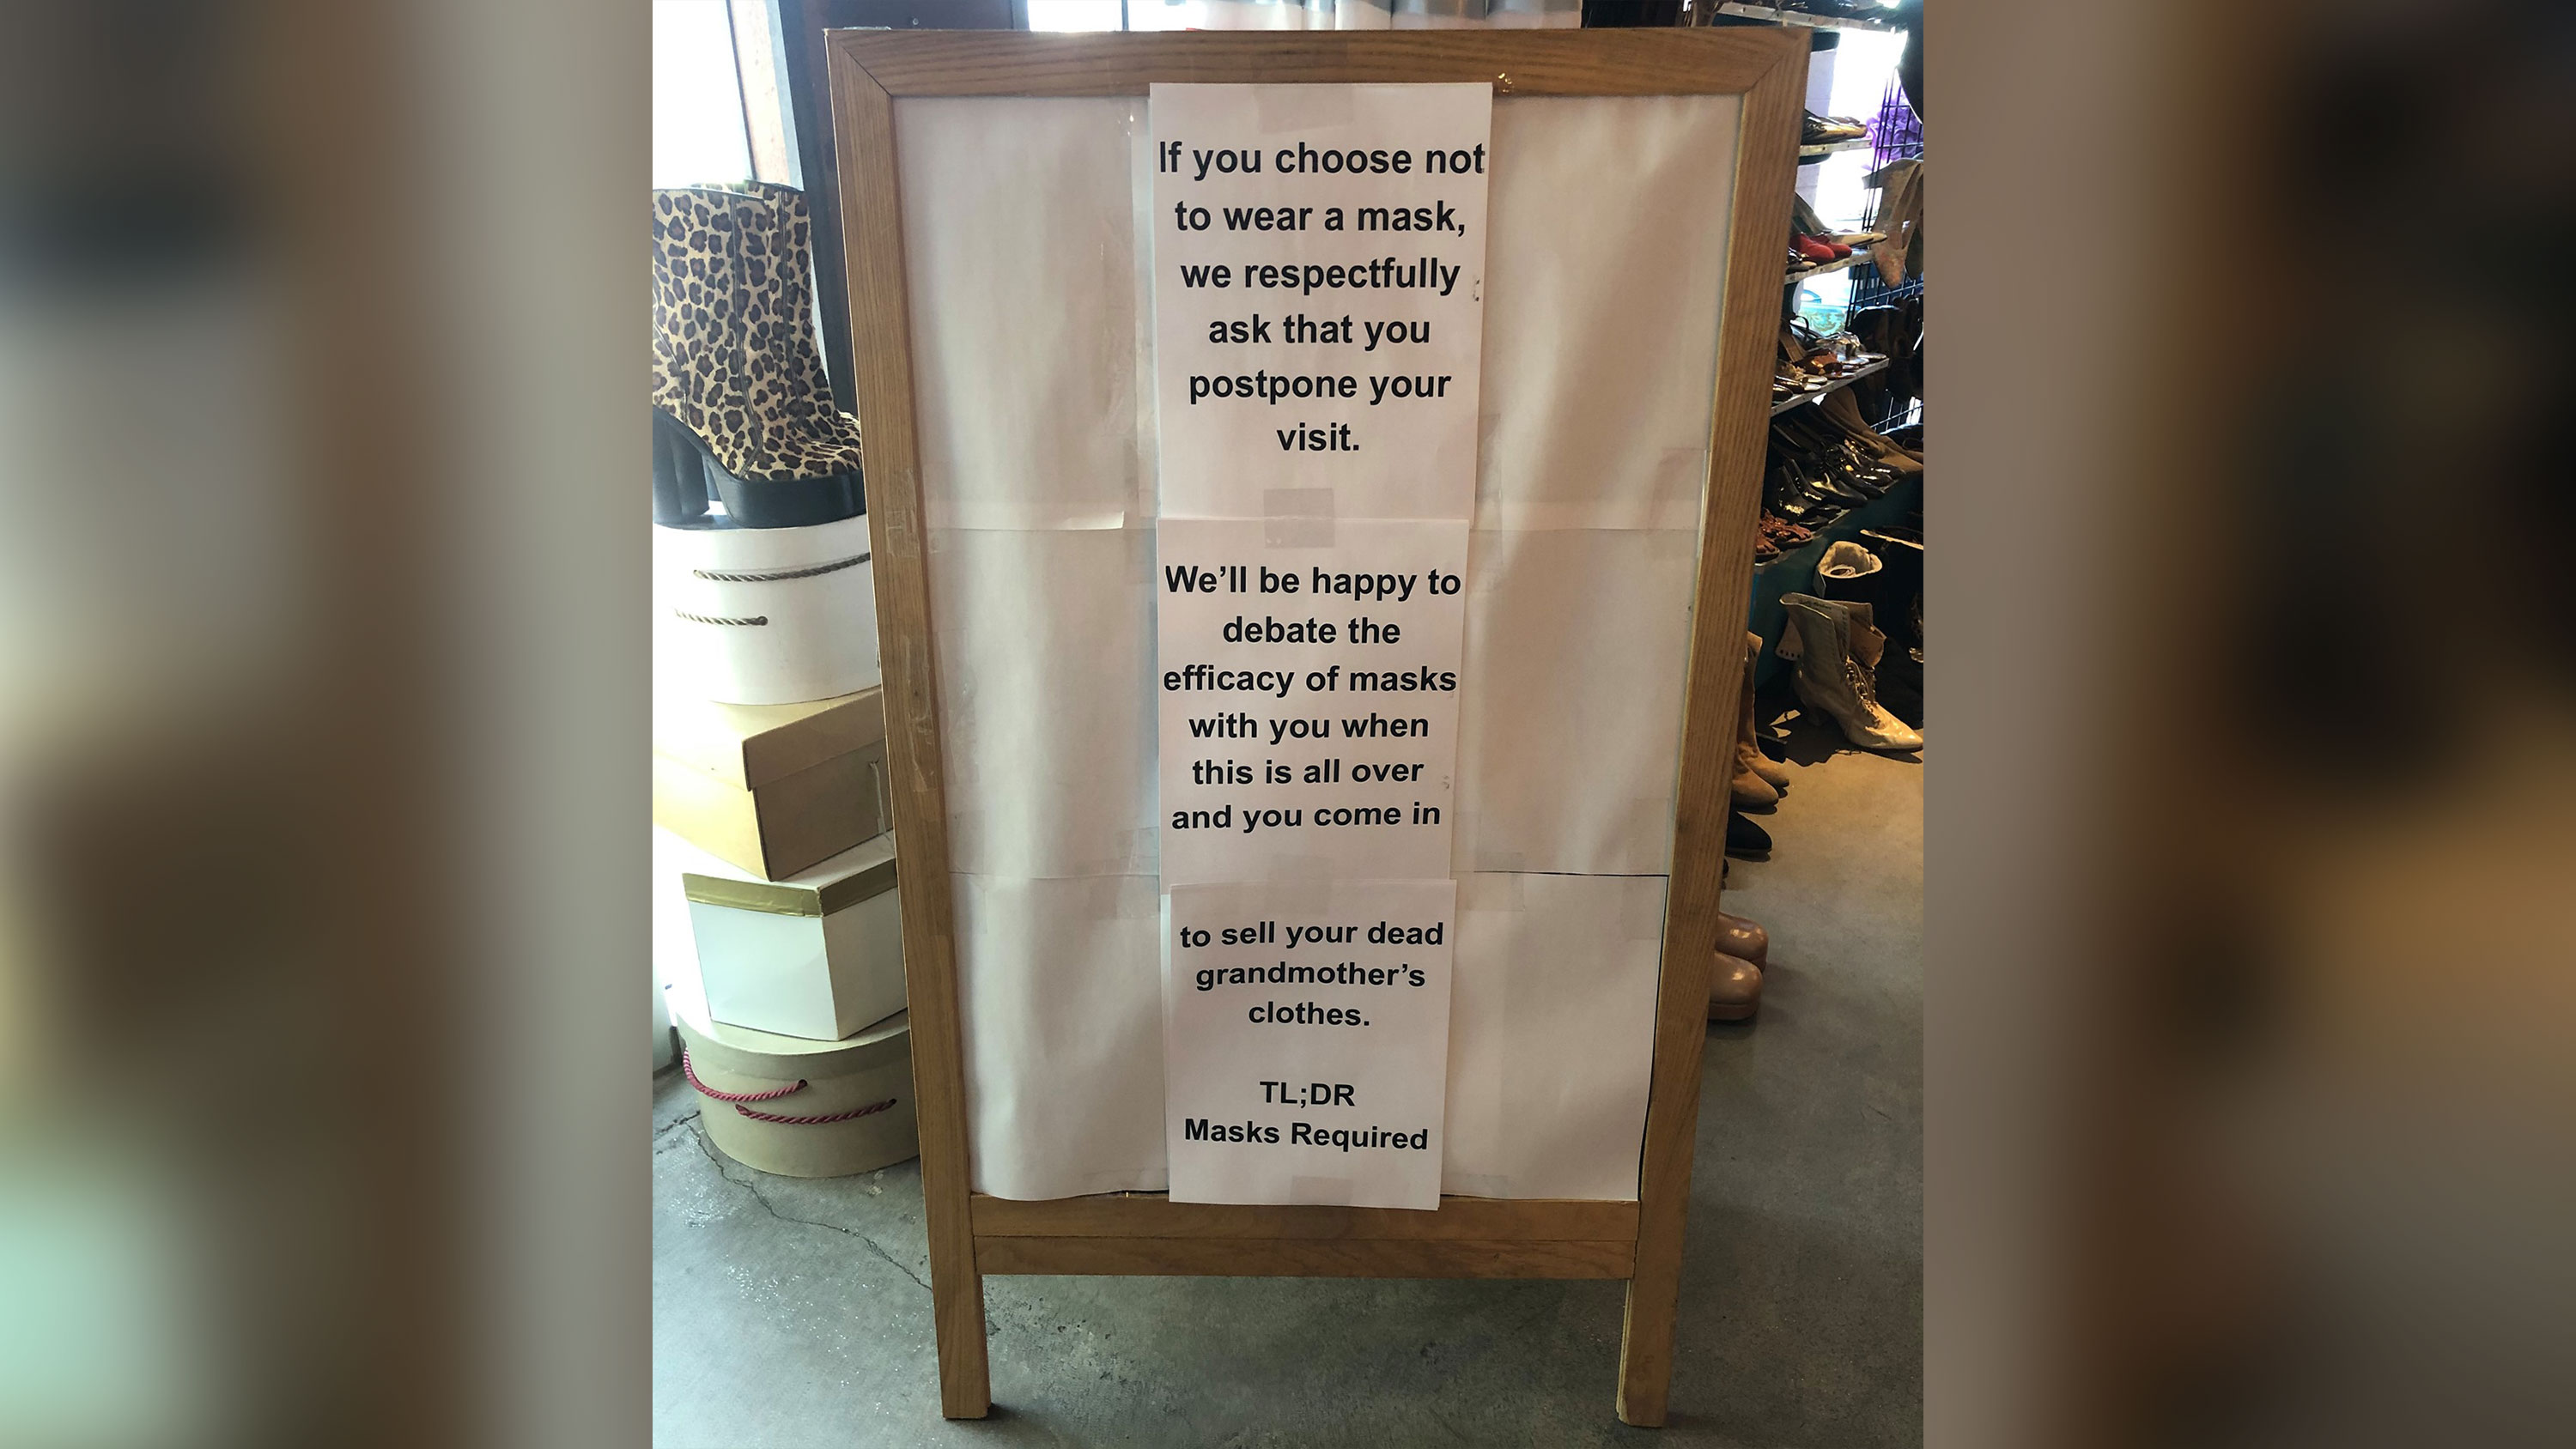 A vintage clothing store isn't arguing with customers about wearing masks